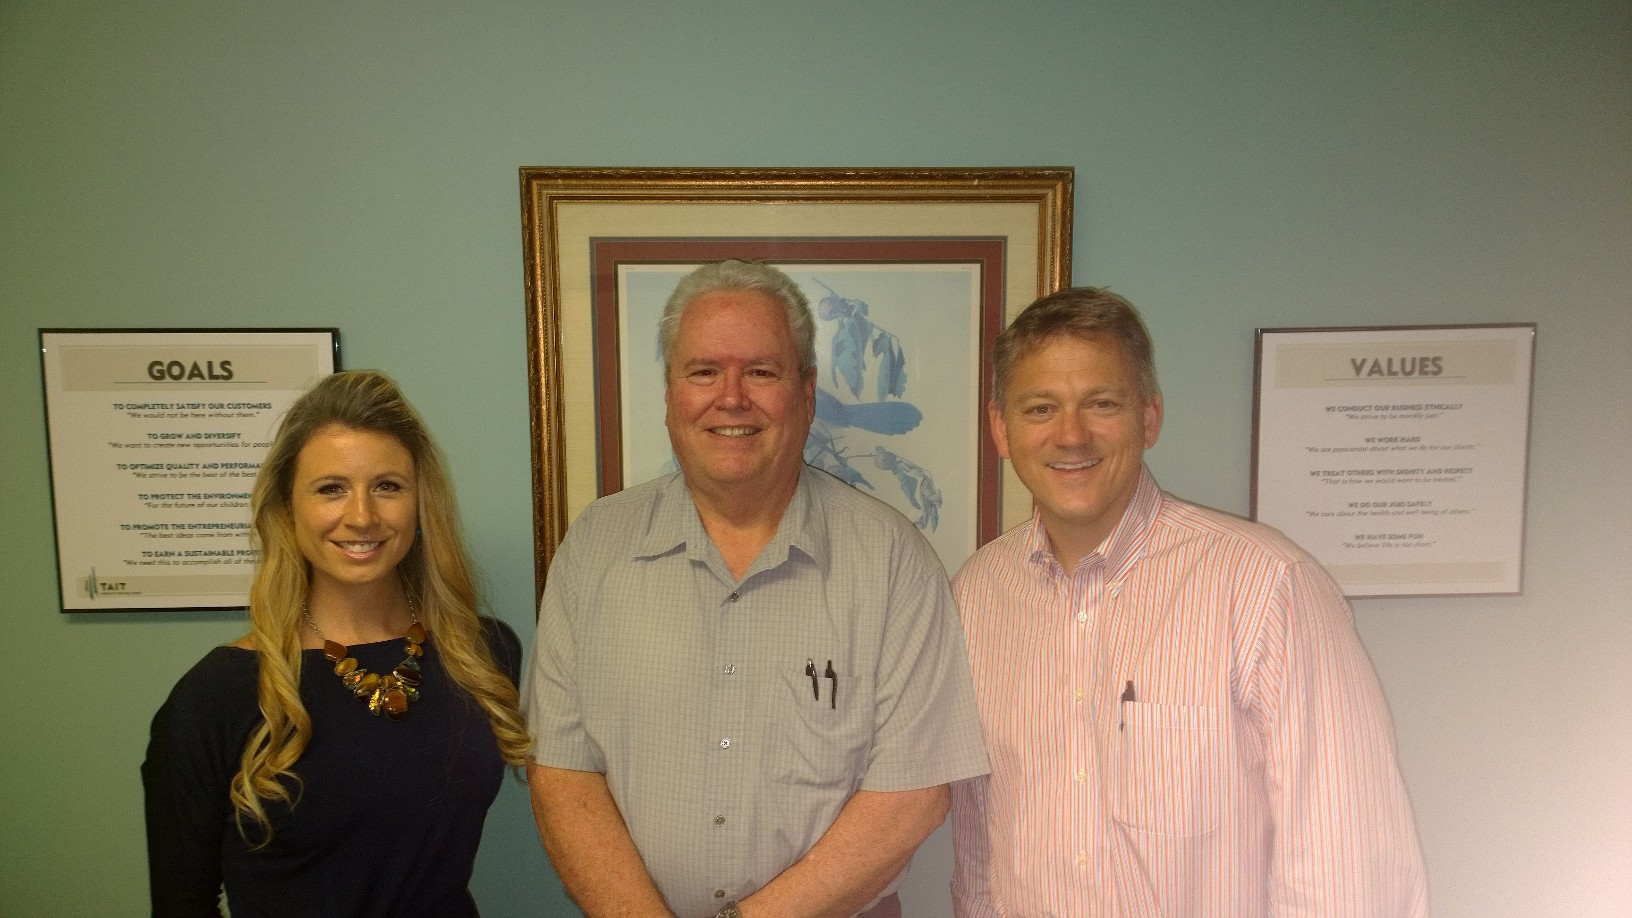 Melanie Nelson, Chuck Bentley and Tim Ericsen of Tait Environmental Services